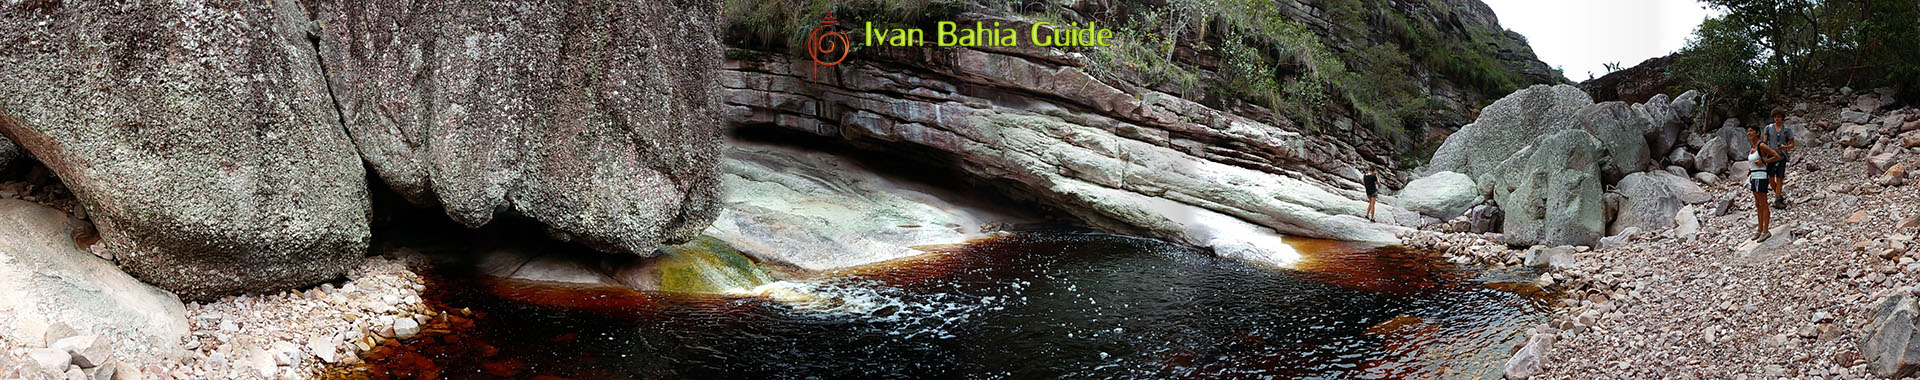 Ivan Bahia tour-guide / hiking in Chapada Diamantina National Park (aka 'the Brazilian Grand Canyon') river-hiking, Canto das Aguas Hotel